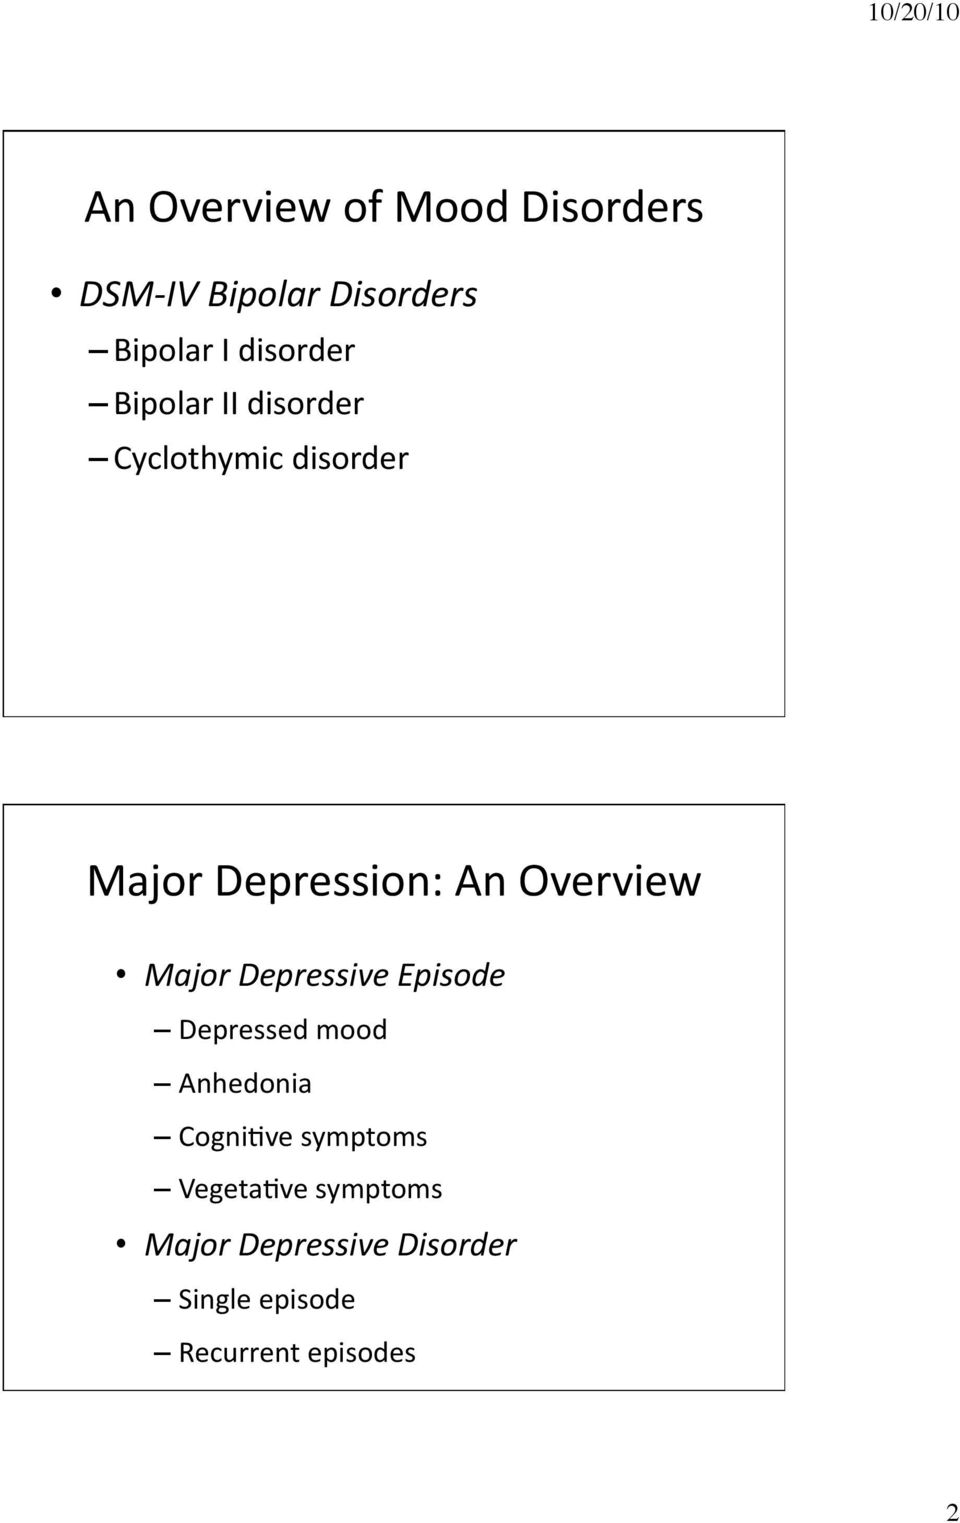 Major Depressive Episode Depressed mood Anhedonia CogniAve symptoms